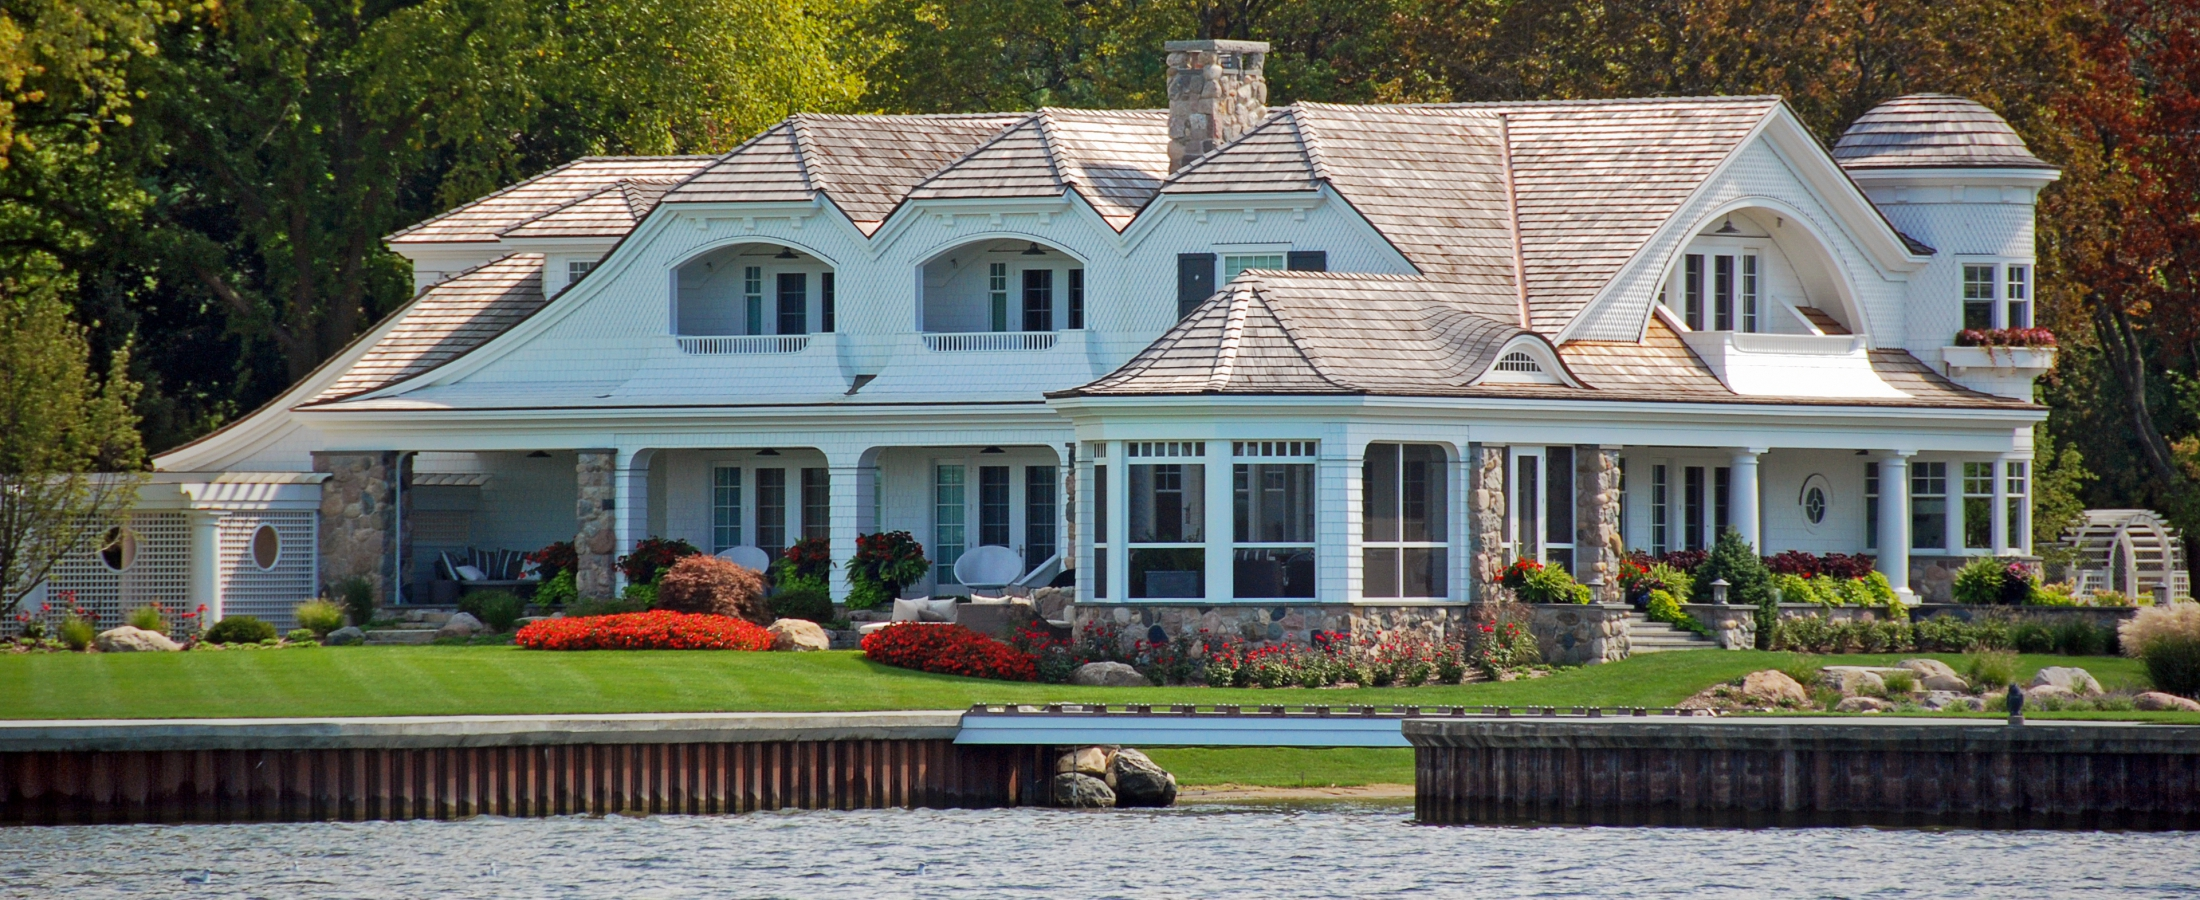 The most expensive homes in lake minnetonka minnesota for Minnesota mansions for sale